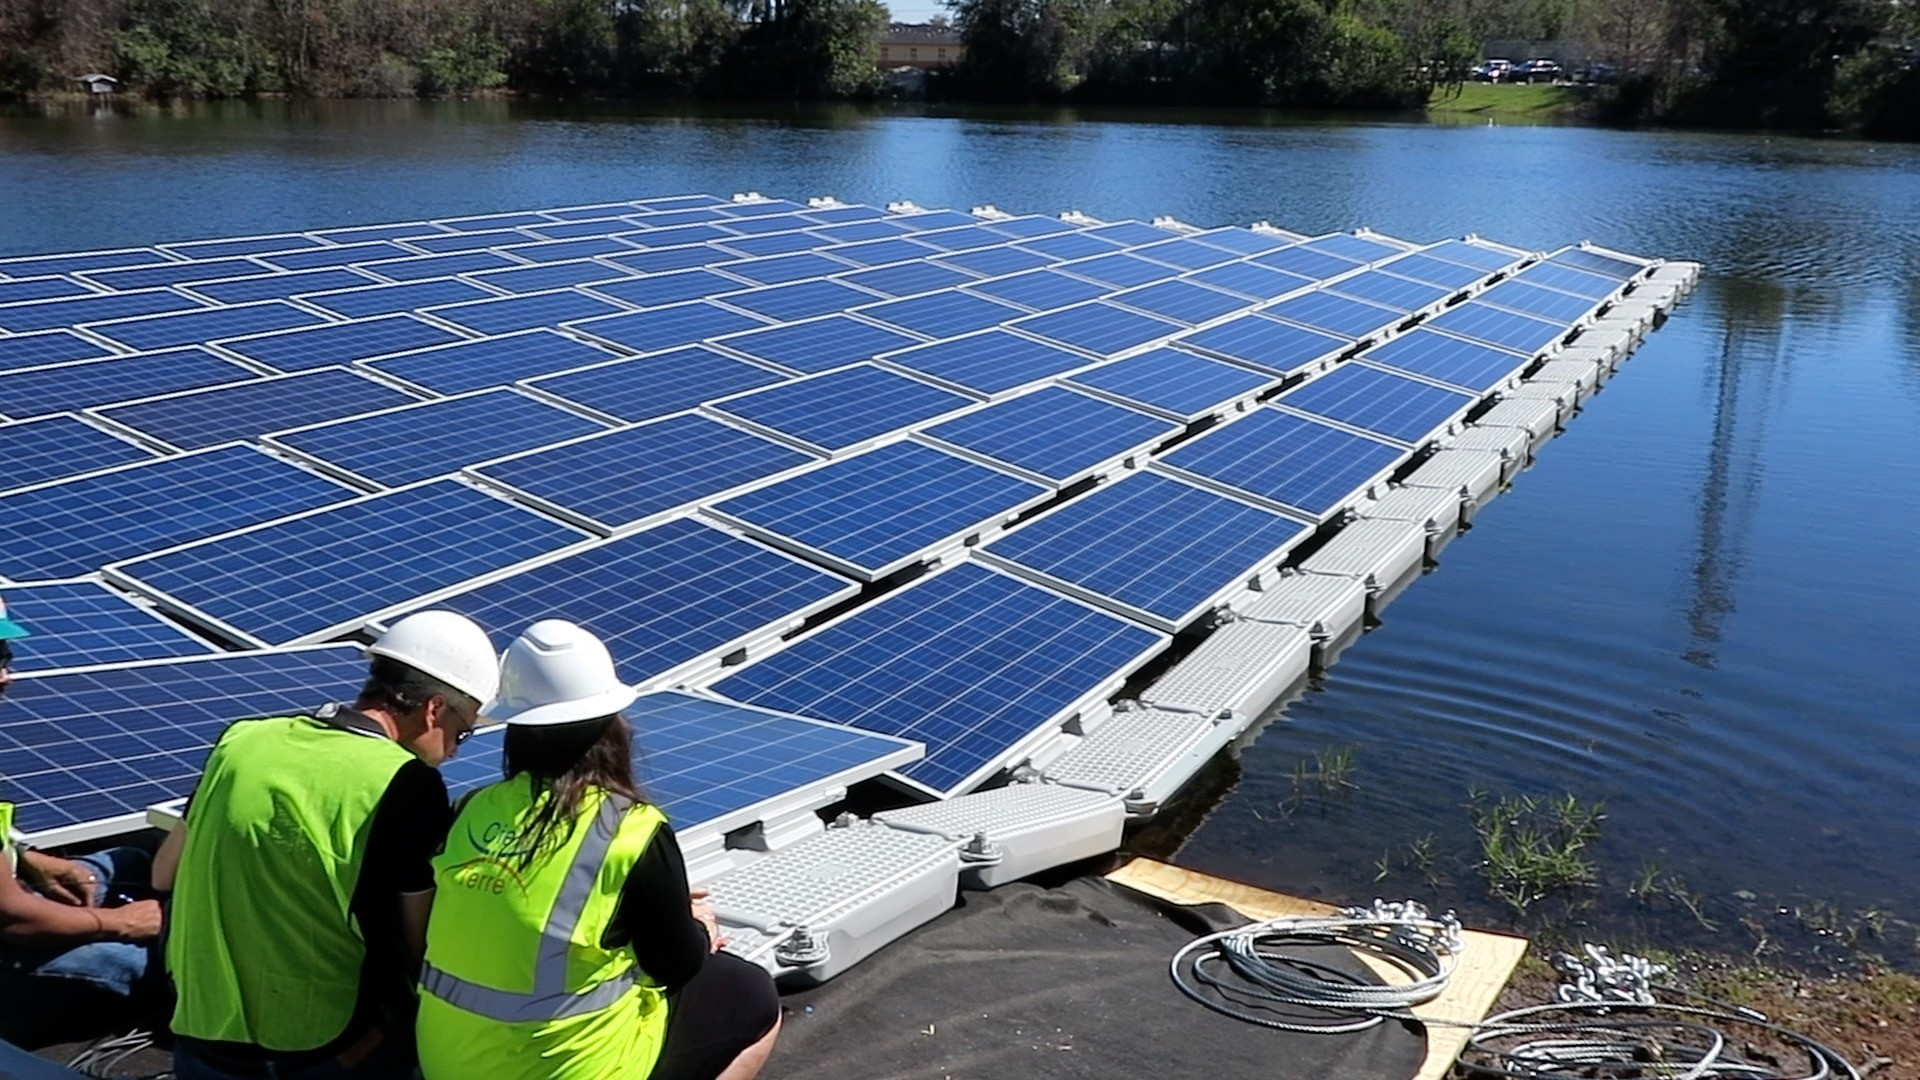 Ouc Installs Floating Solar Panels To Take Advantage Of